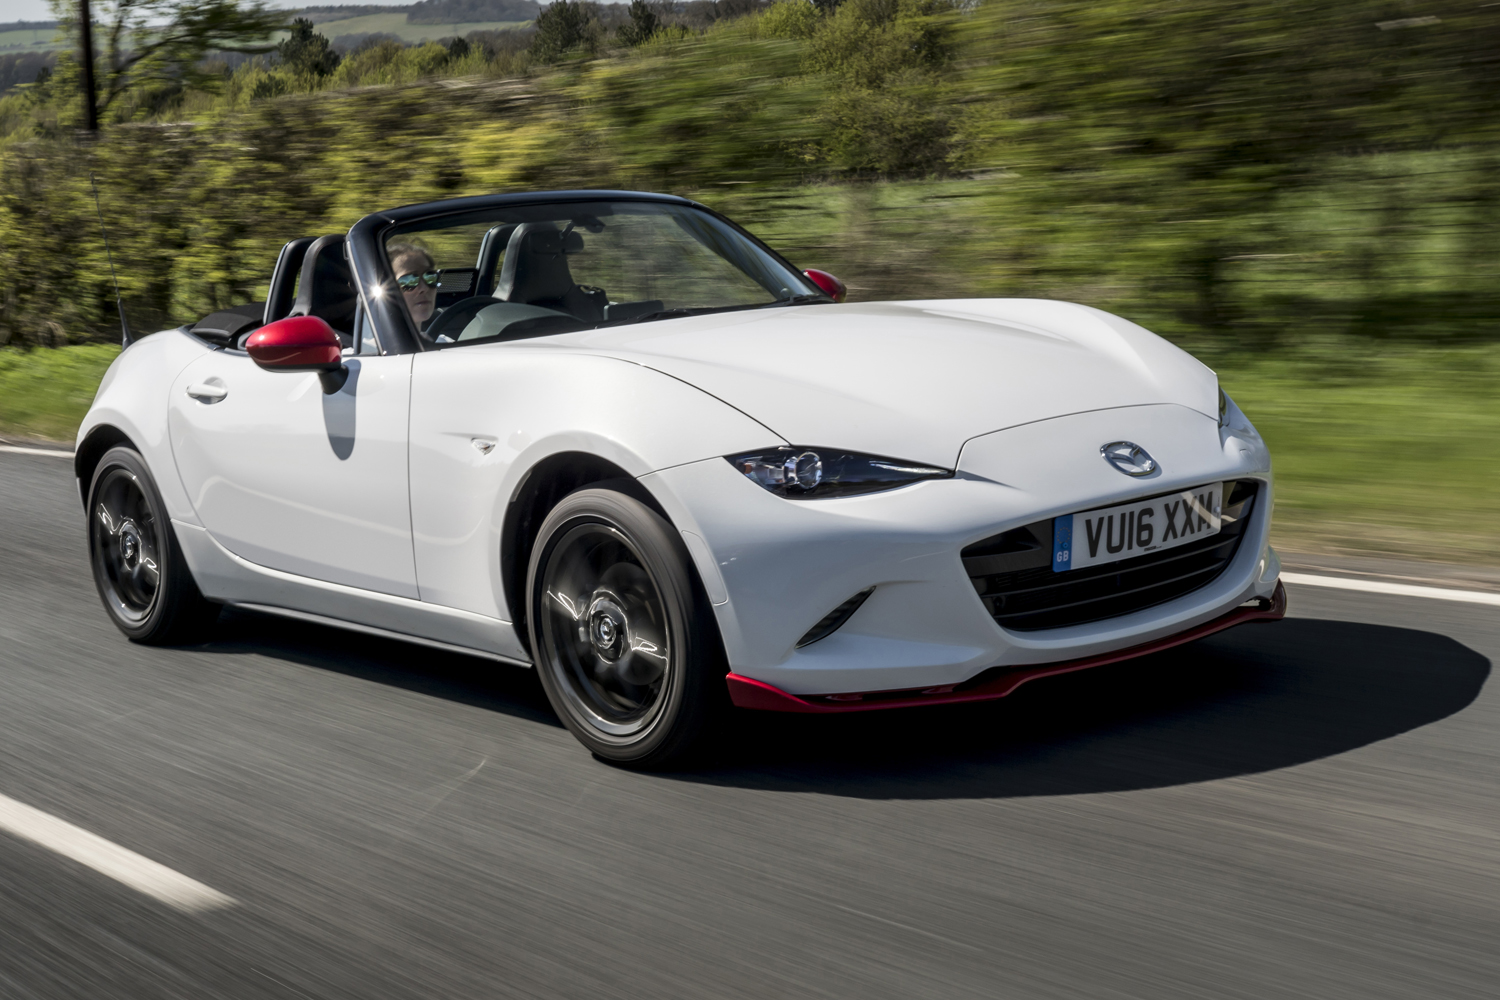 mazda to reveal new mx 5 icon edition at goodwood. Black Bedroom Furniture Sets. Home Design Ideas